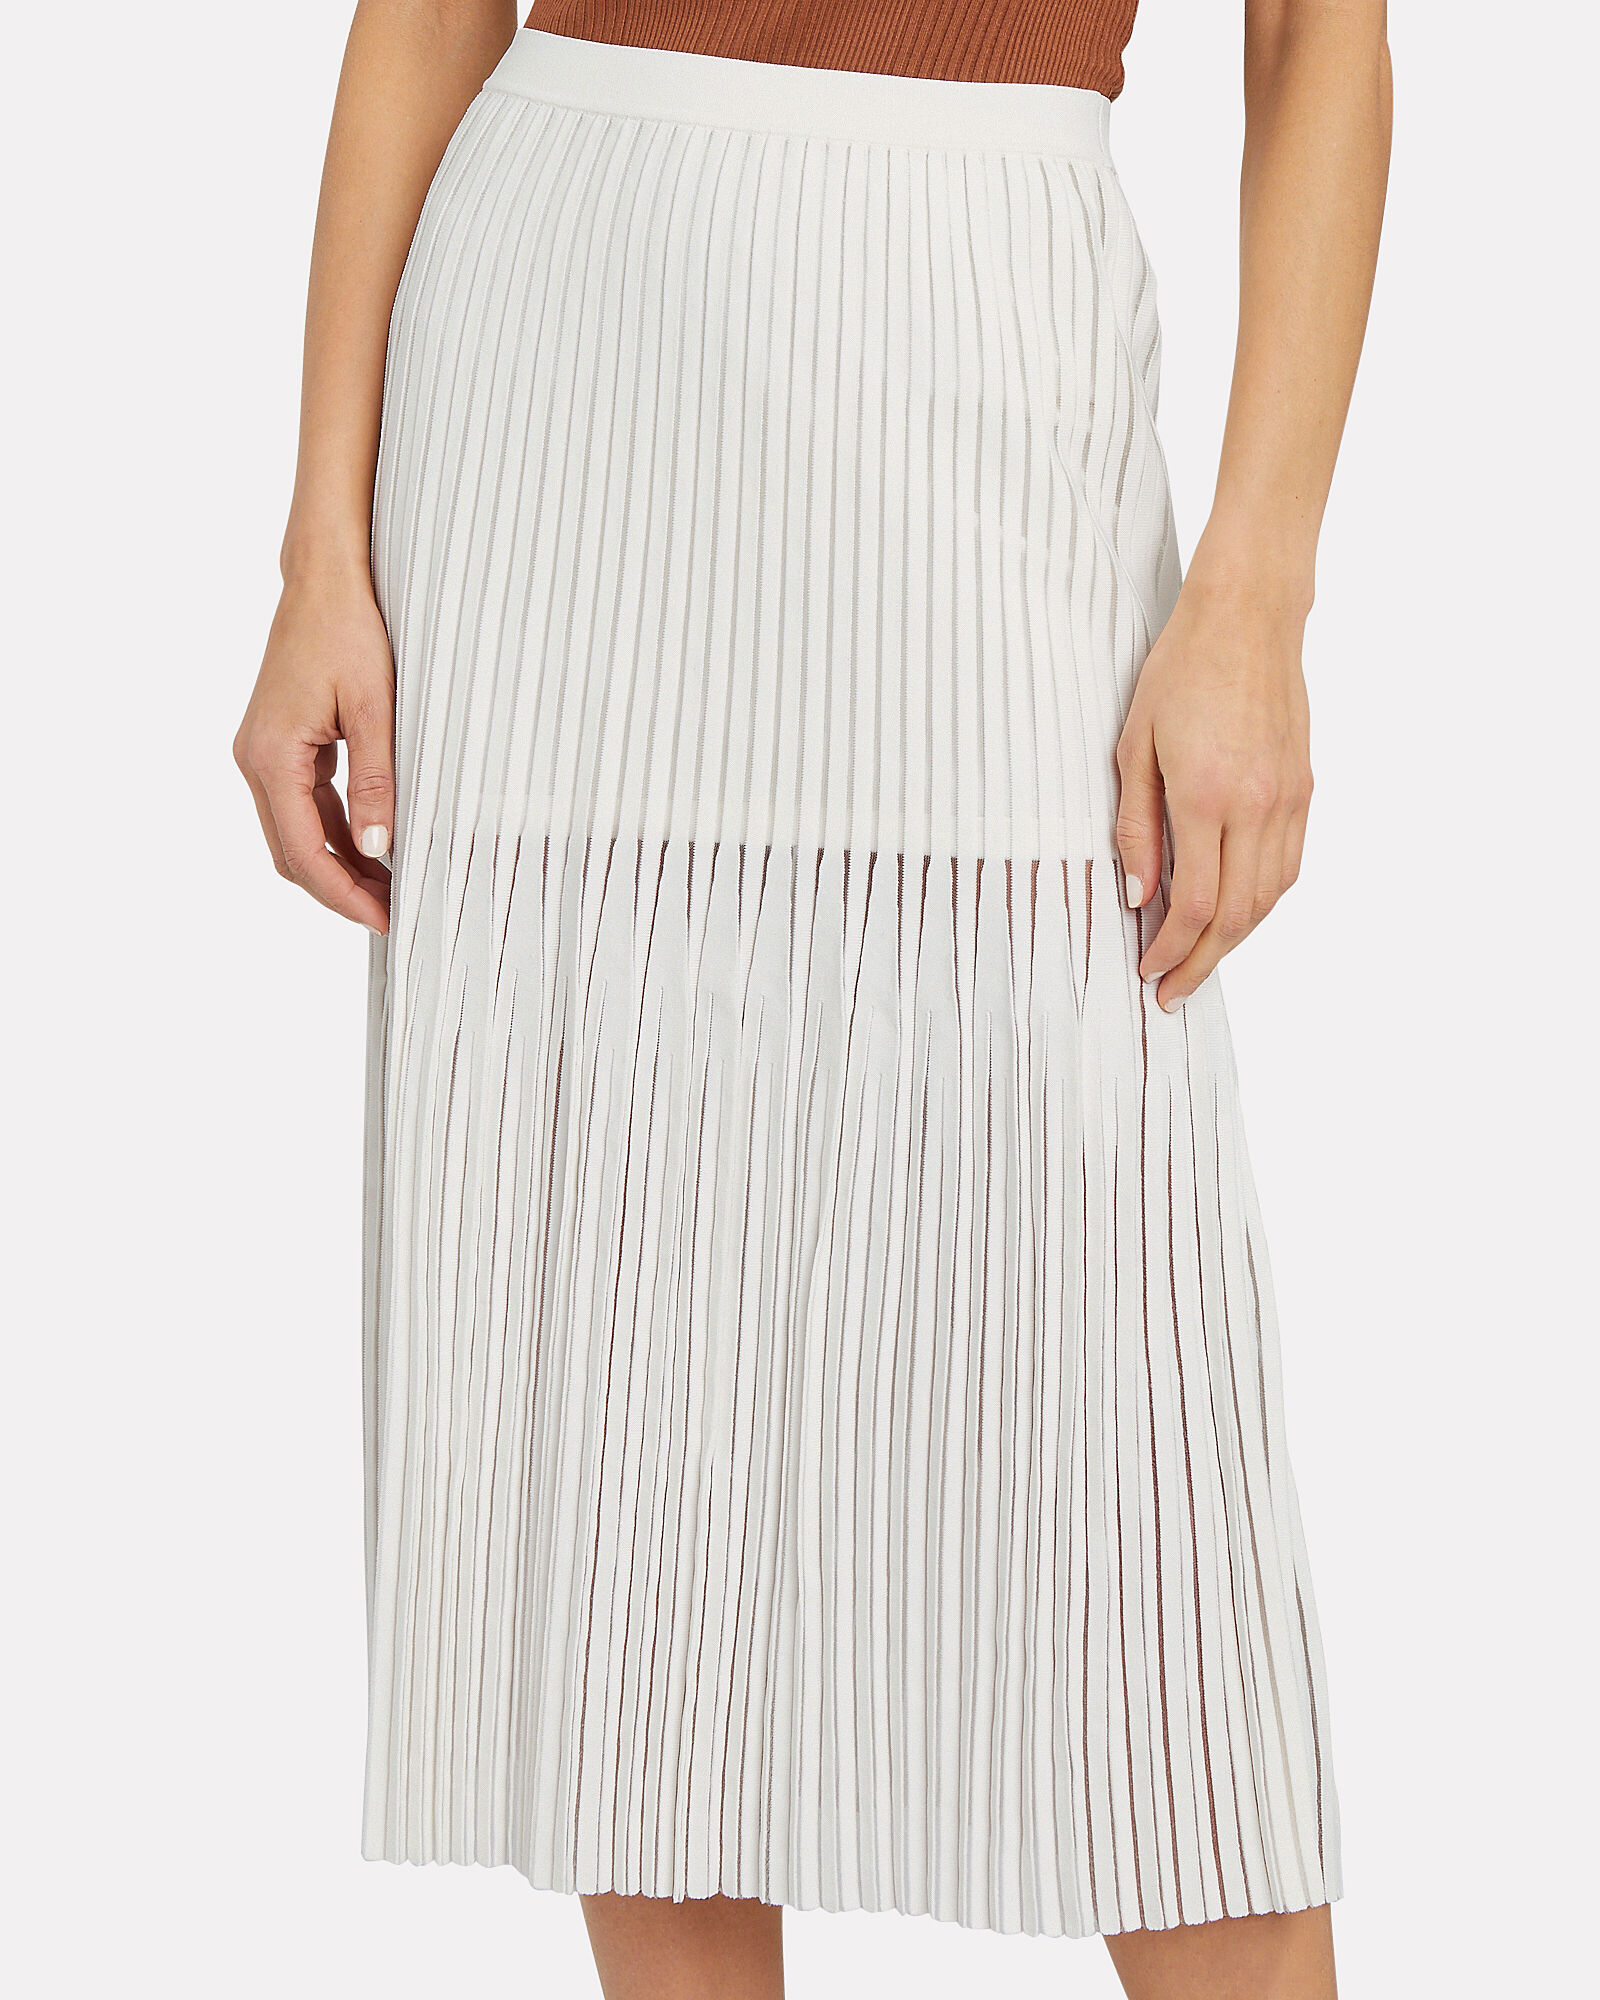 Godet Pleated Knit Midi Skirt, IVORY, hi-res